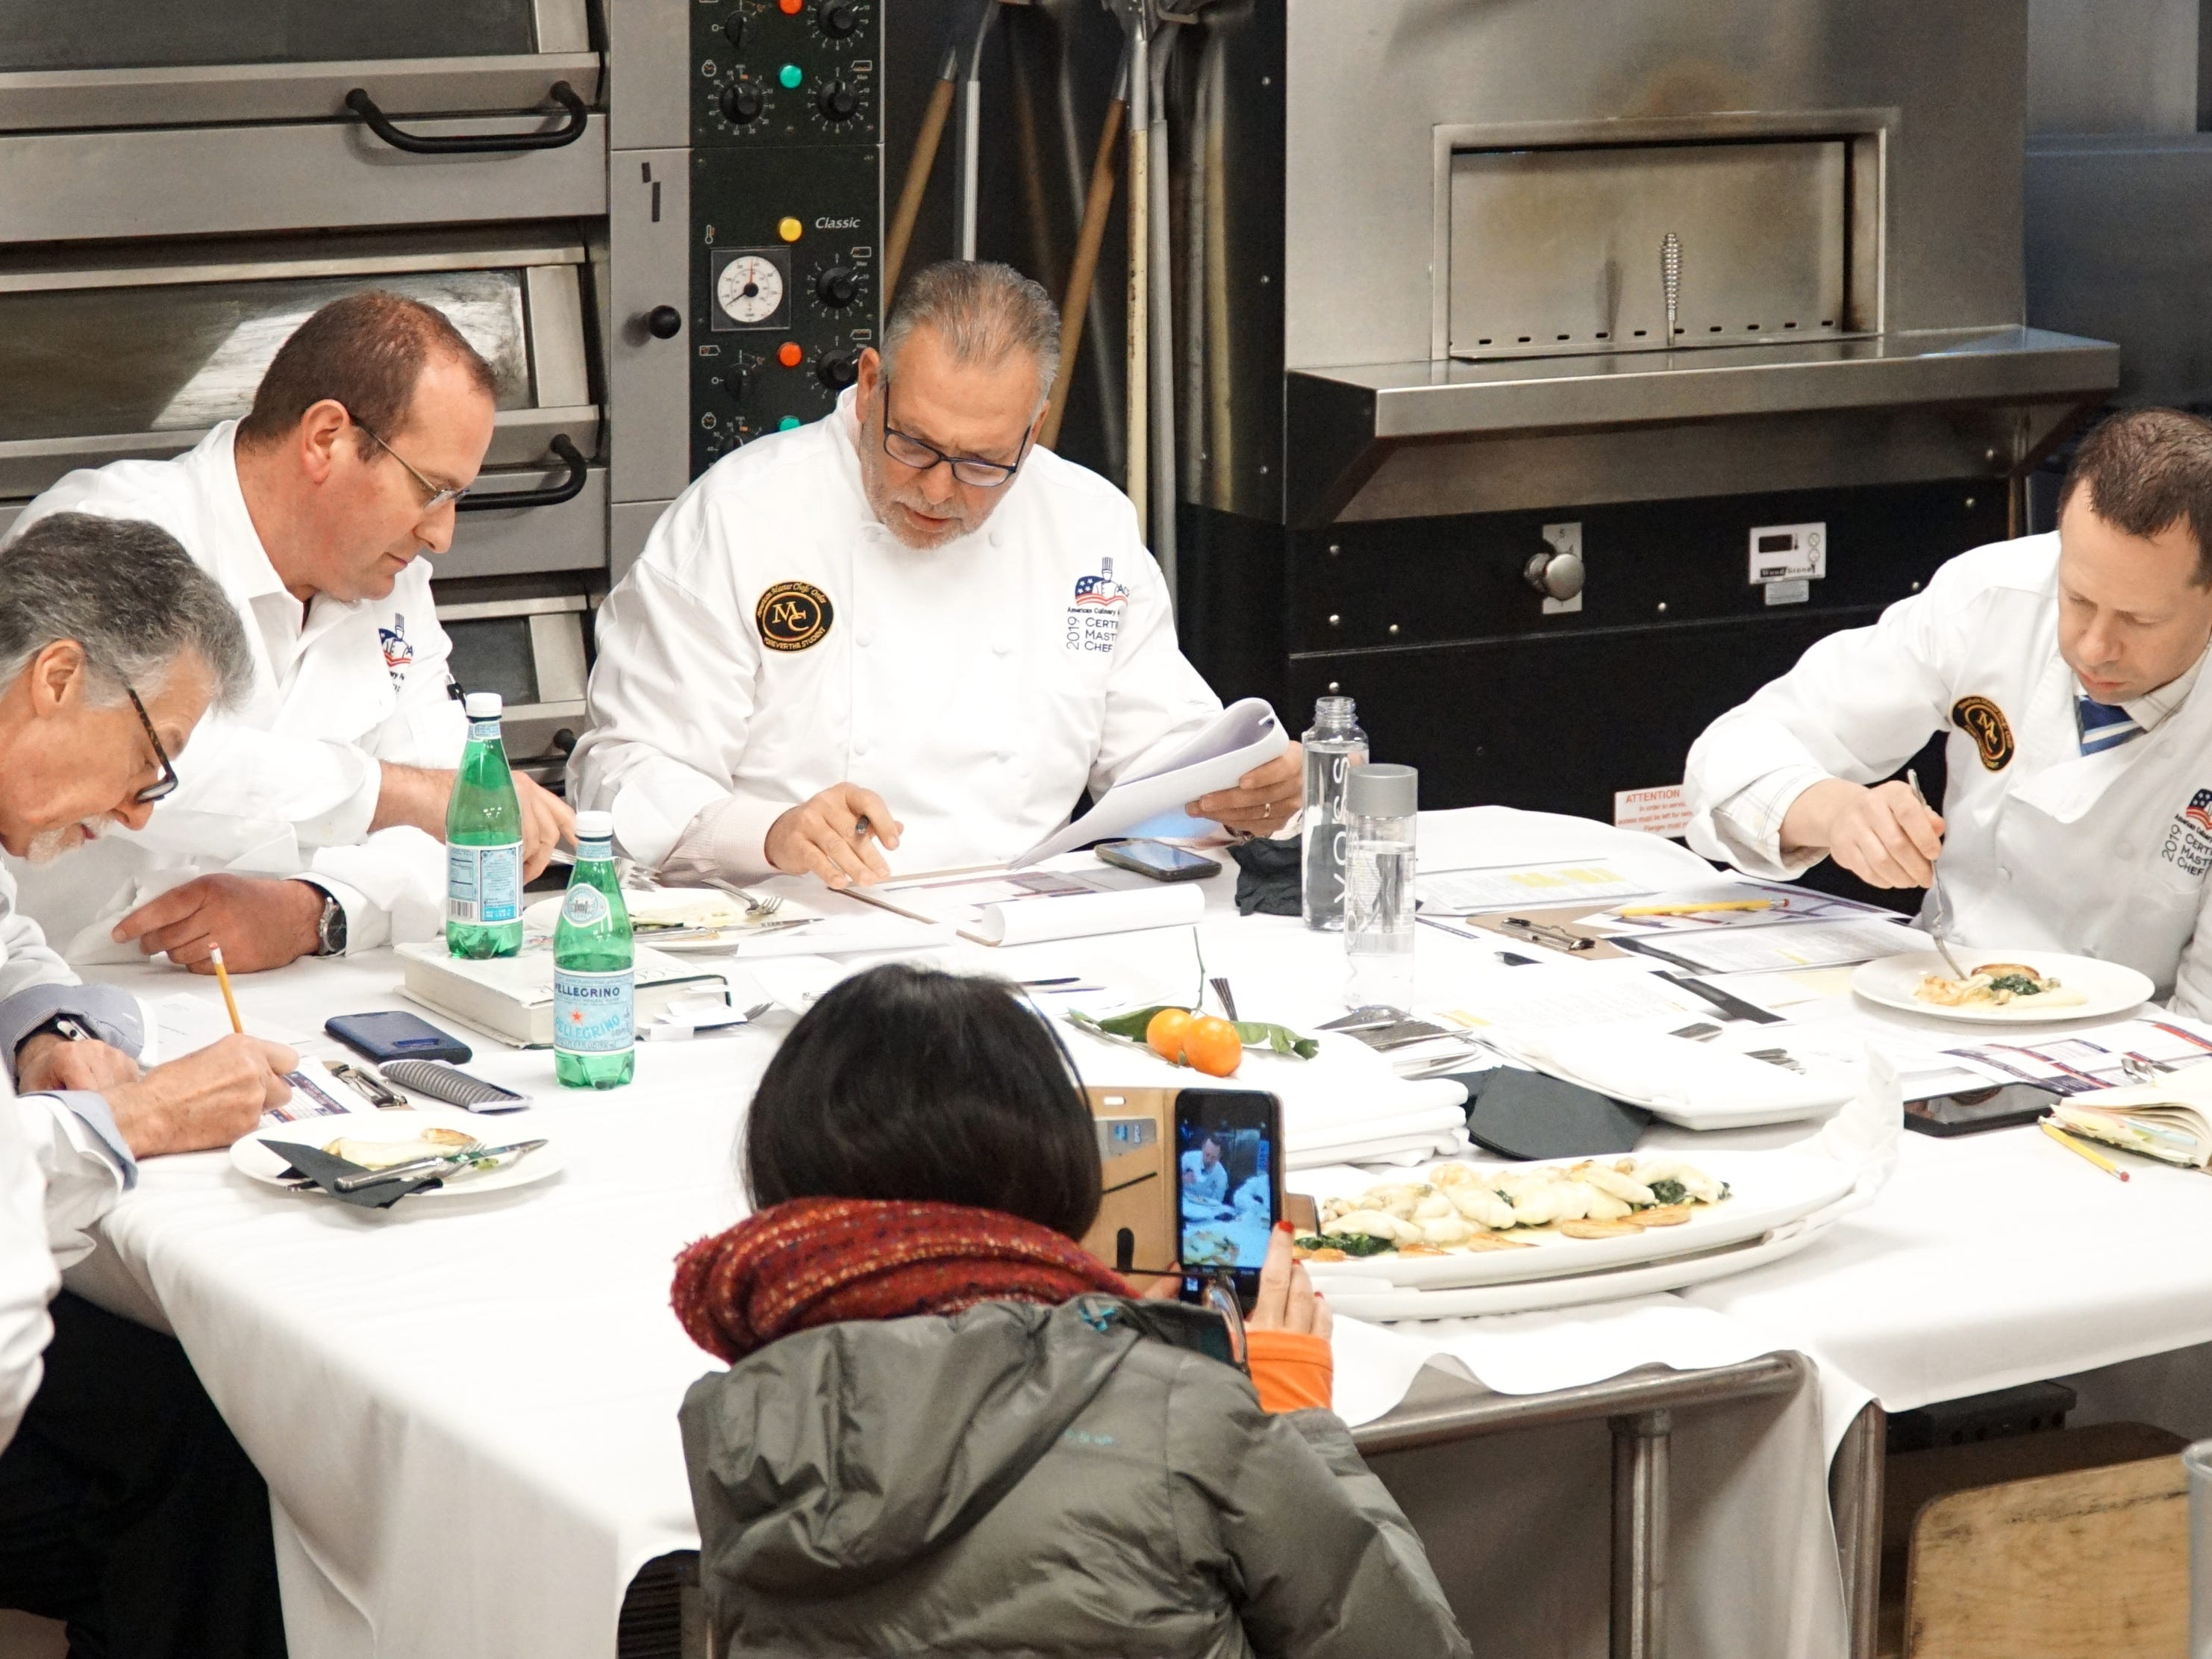 Chefs comandeered a room at the Vista Tech Center's kitchen to try Timothy Bucci's creations.